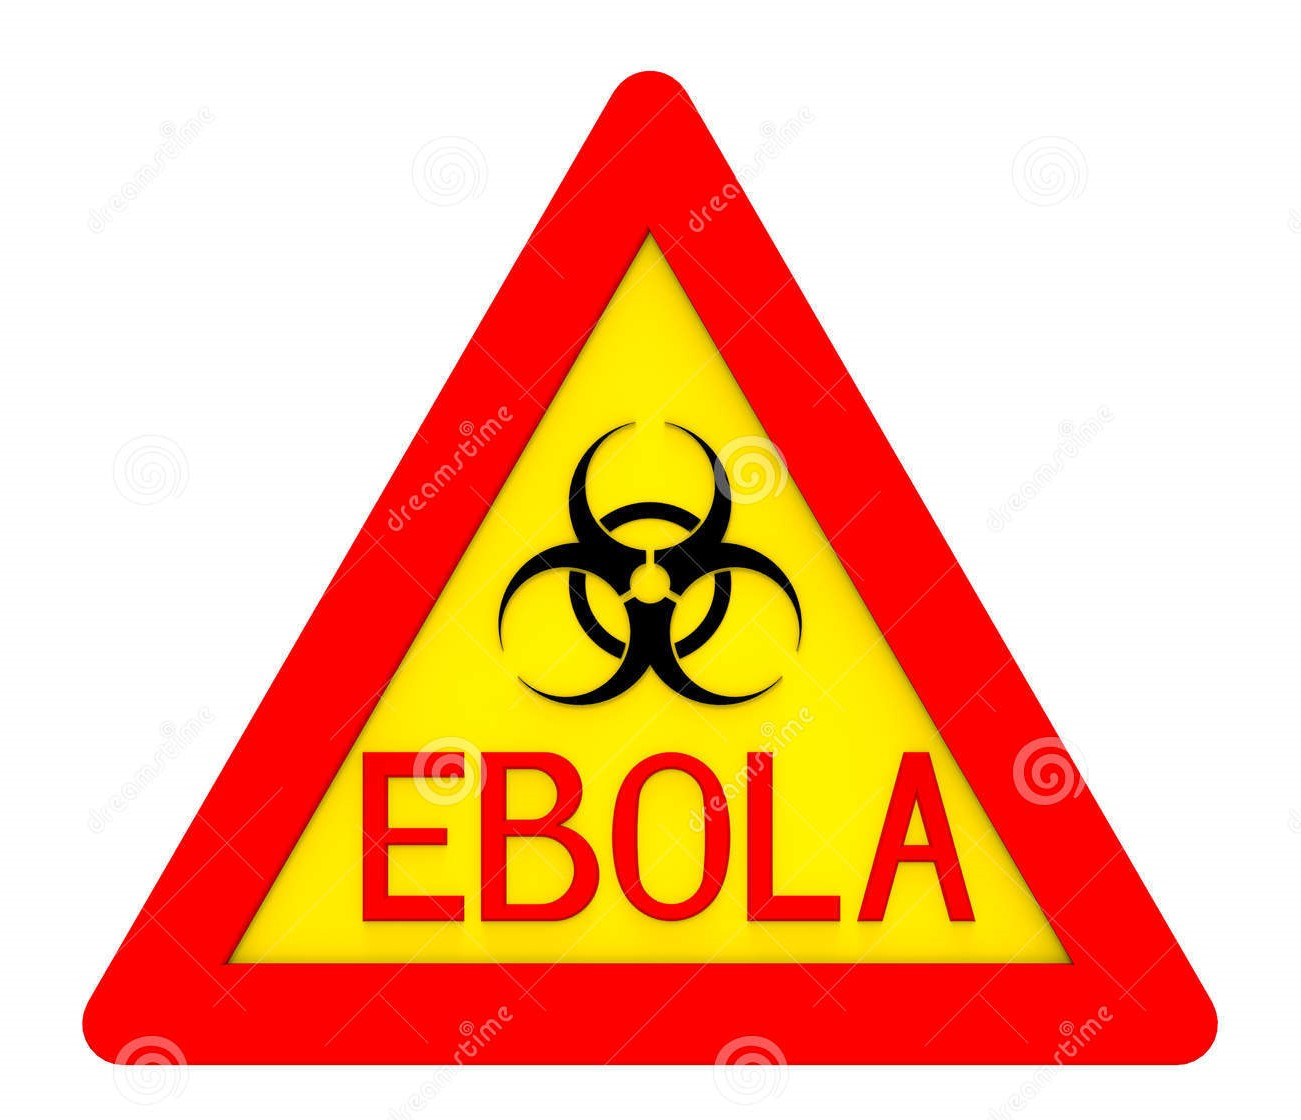 ebola-biohazard-sign-isolated-white-d-render-436906422222